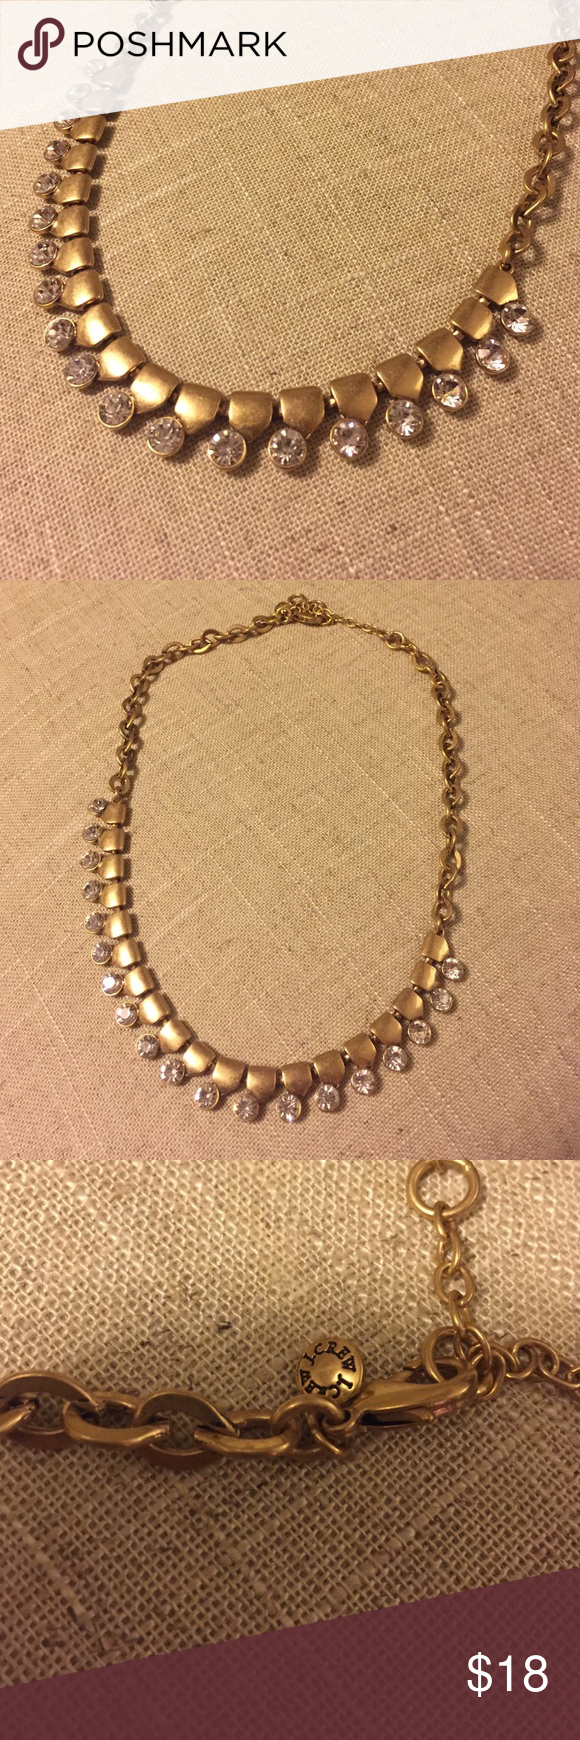 JCrew gold & silver rhinestone necklace JCrew necklace with silver rhinestone detail & gold chain. Like new, excellent condition. J. Crew Jewelry Necklaces